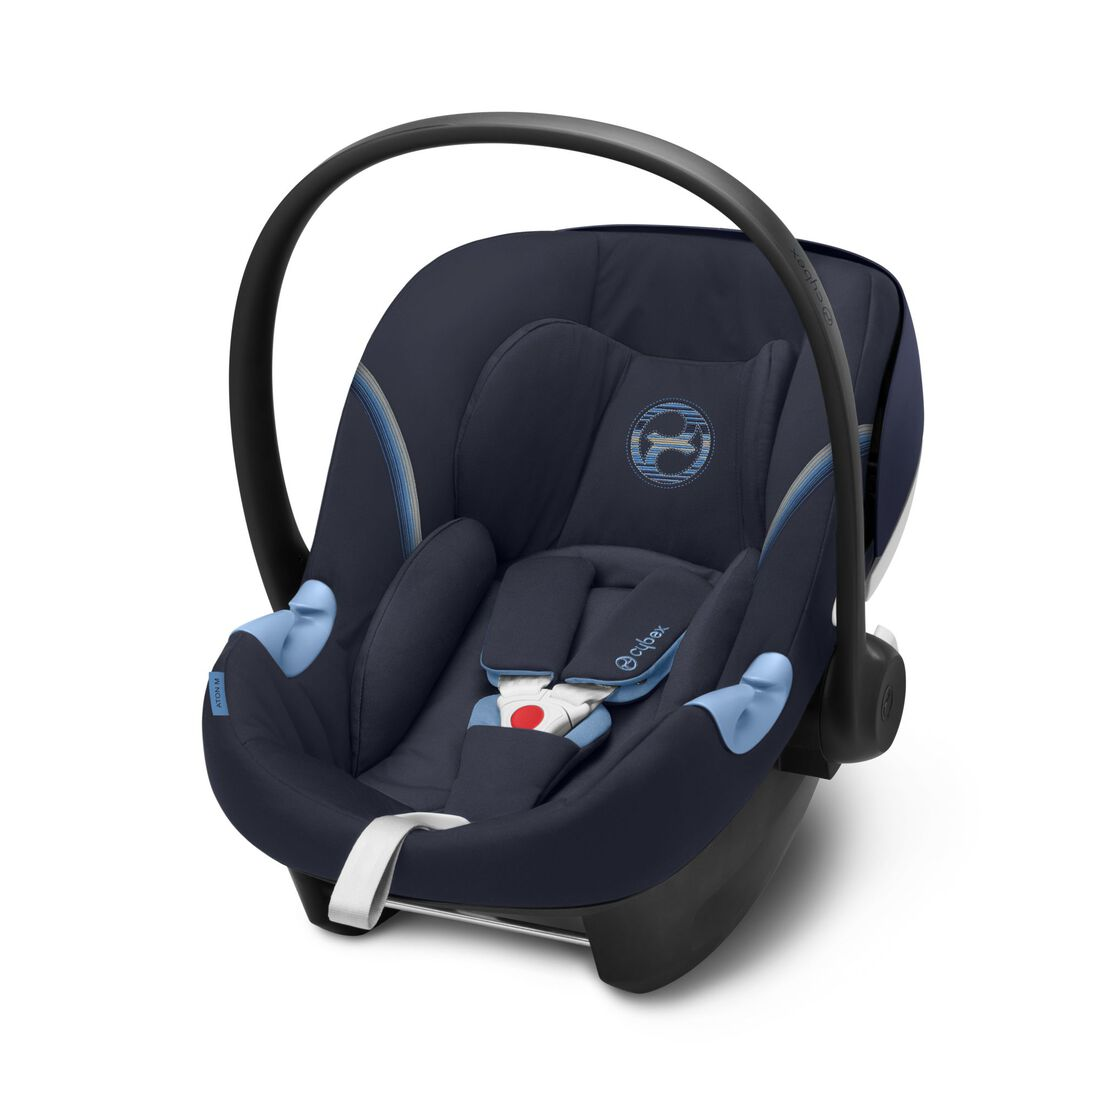 CYBEX Aton M i-Size - Navy Blue in Navy Blue large Bild 1